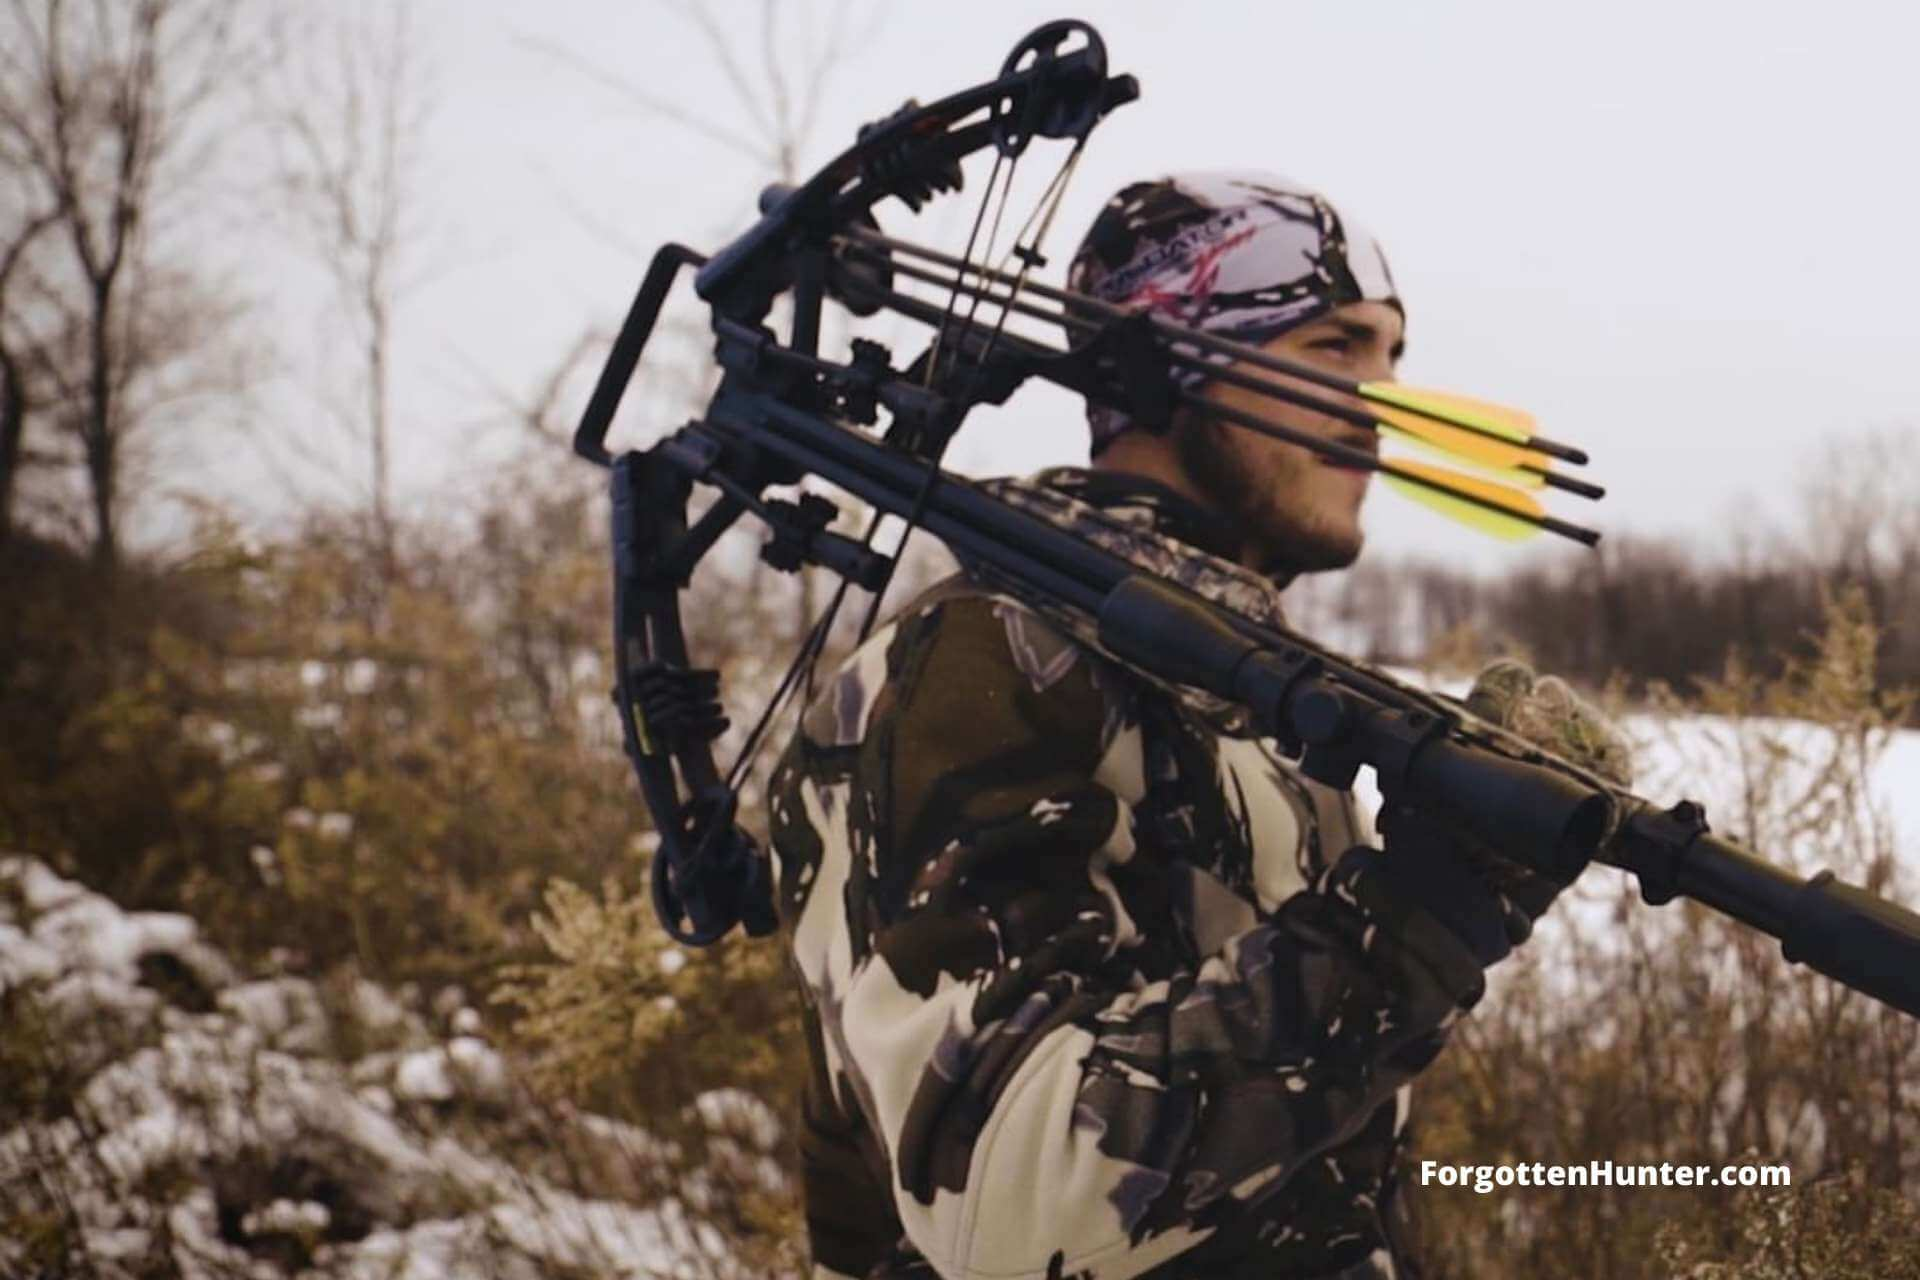 CenterPoint Mercenary 390 With Whisper Silencing System Crossbow Review